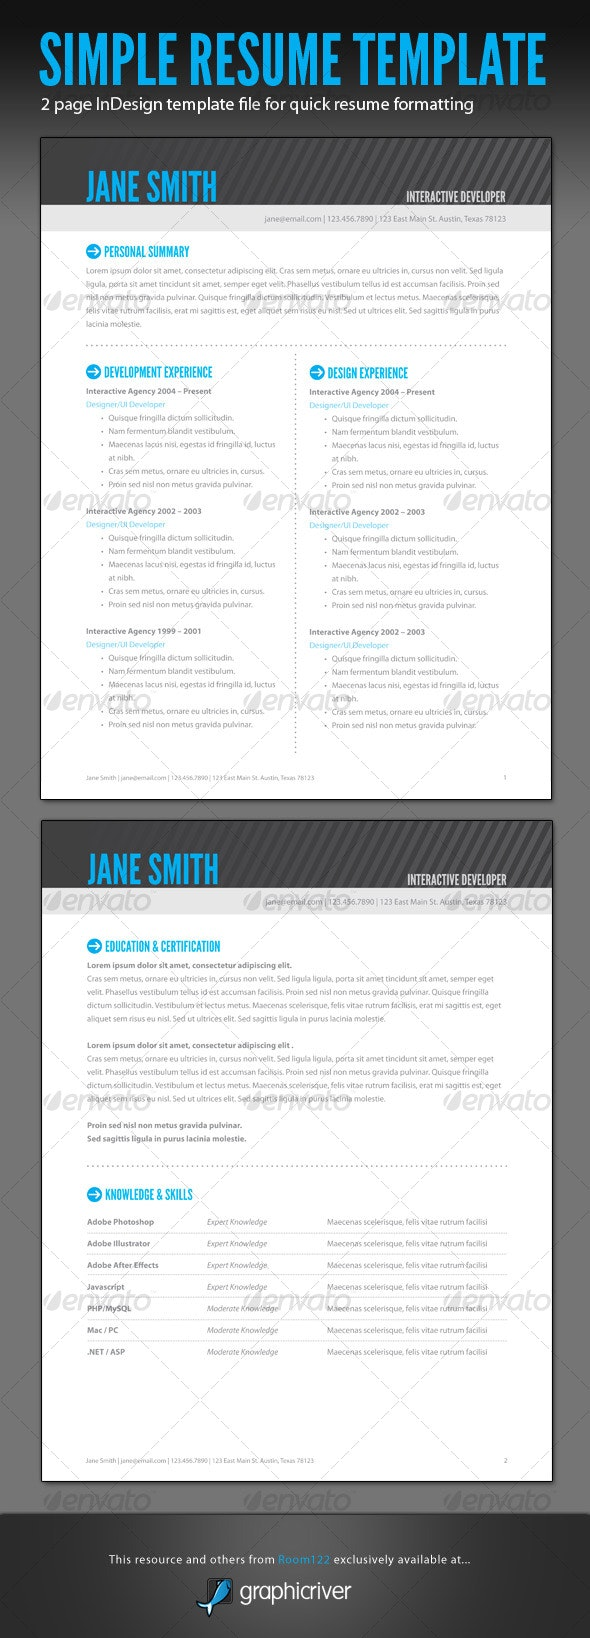 Simple Resume - InDesign Template